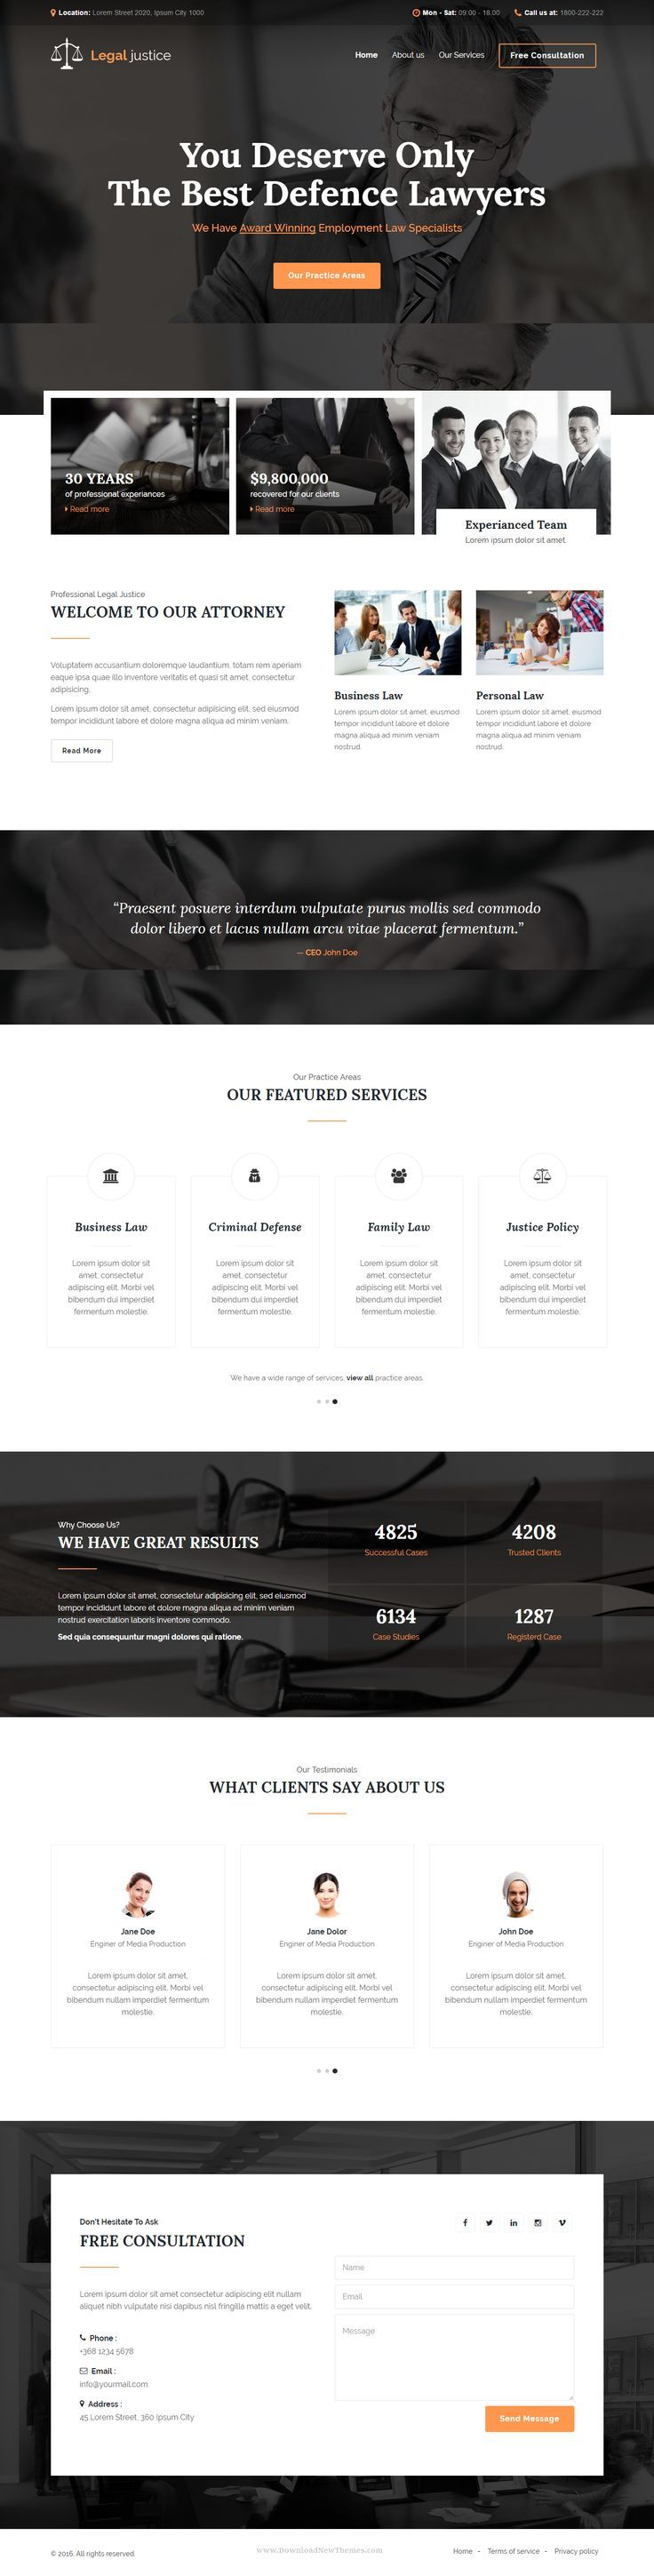 Legal justice is a stunning HTML5 Template – to make the best impression on current and future clients. It is perfect for lawyers, law firms, attorneys, consultants, legal corporations, legal Advisers, justice corporations, agents and for any legal and law related businesses. website Chose WebsitesYES.com for your design needs.